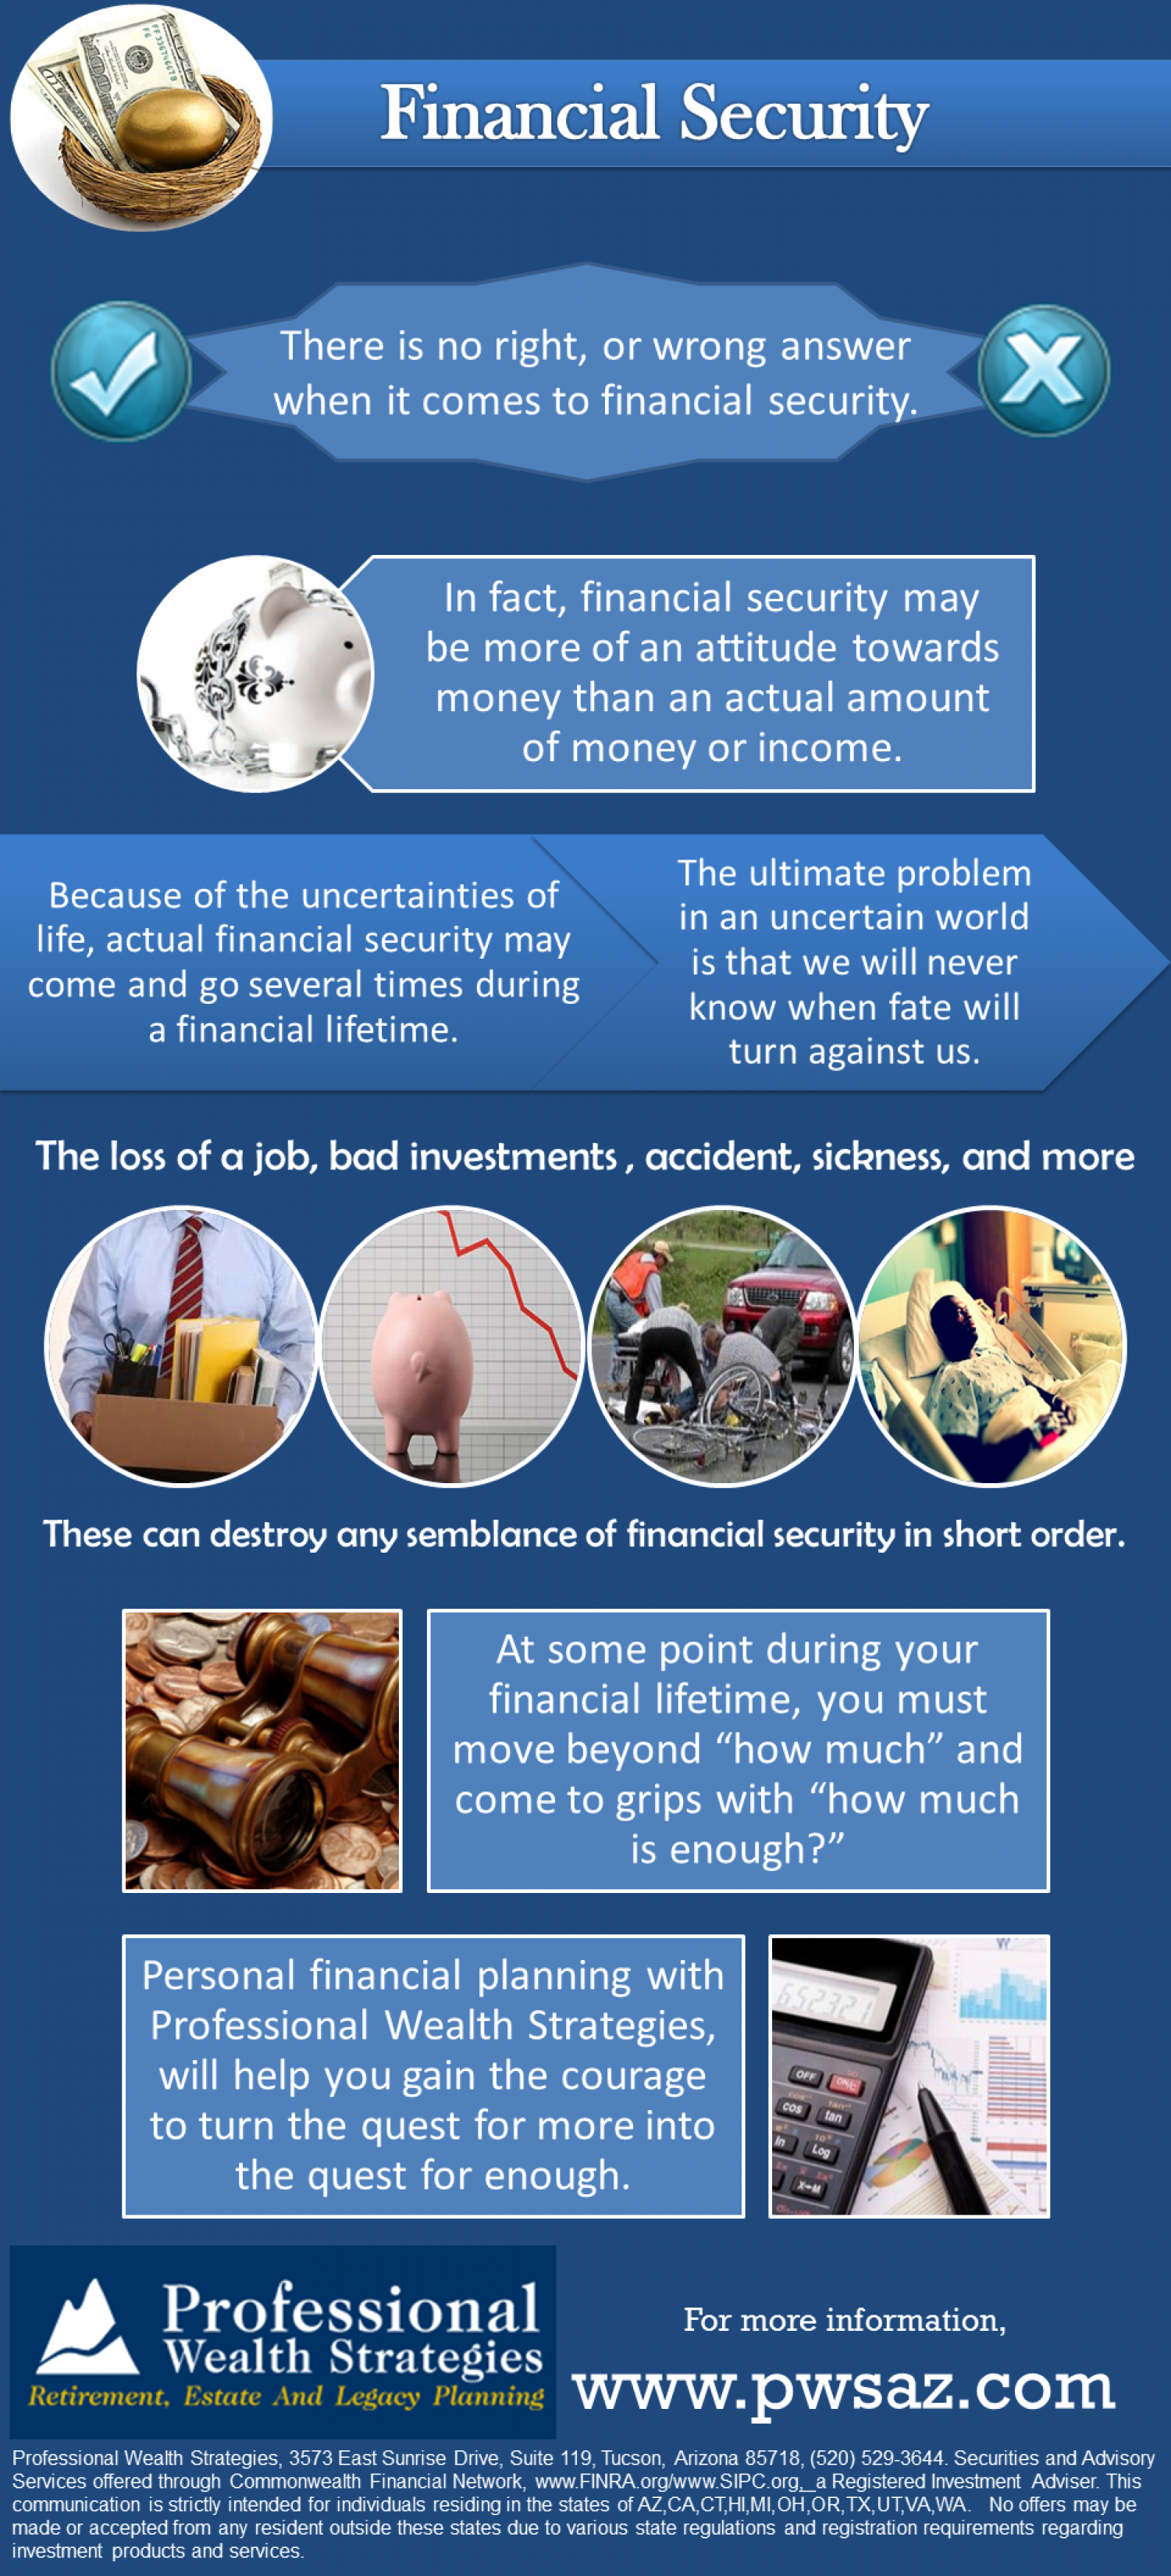 Financial Security Infographic